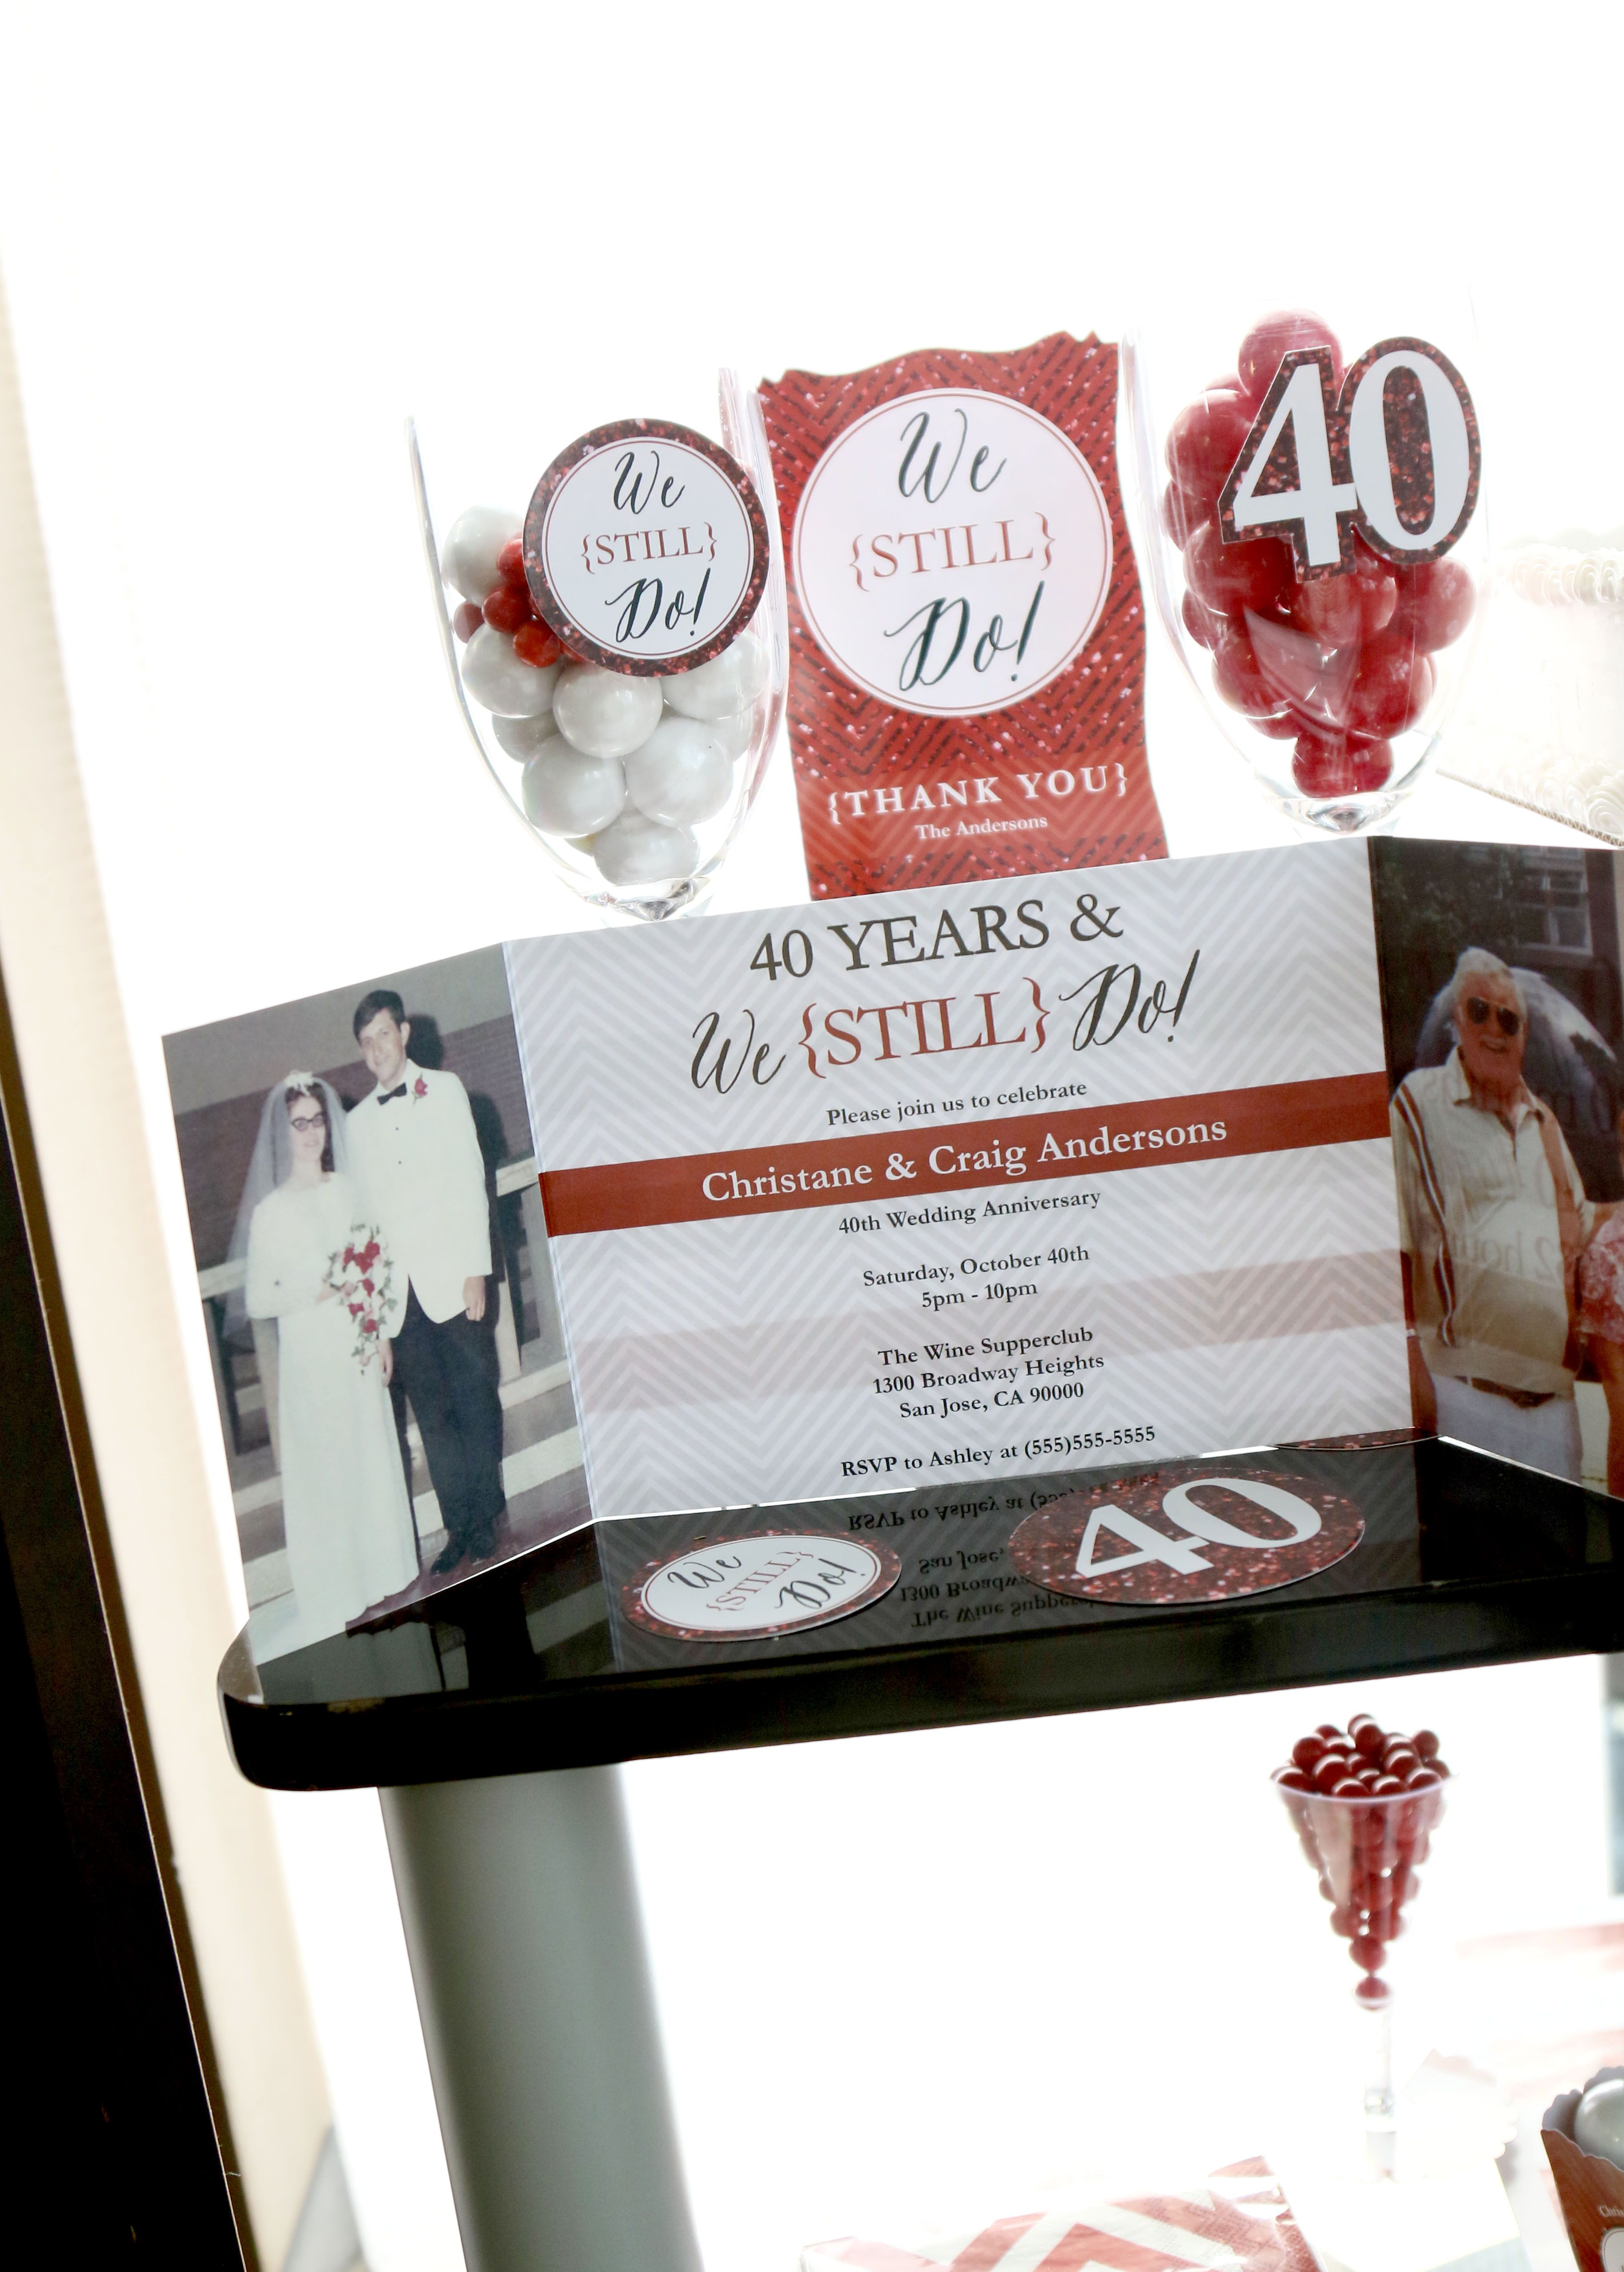 We Still Do 40th Wedding Anniversary Personalized Anniversary Selfie Photo Booth Picture Frame Props Printed On Sturdy Material 40th Wedding Anniversary 40th Wedding Anniversary Party Ideas 40th Anniversary Party